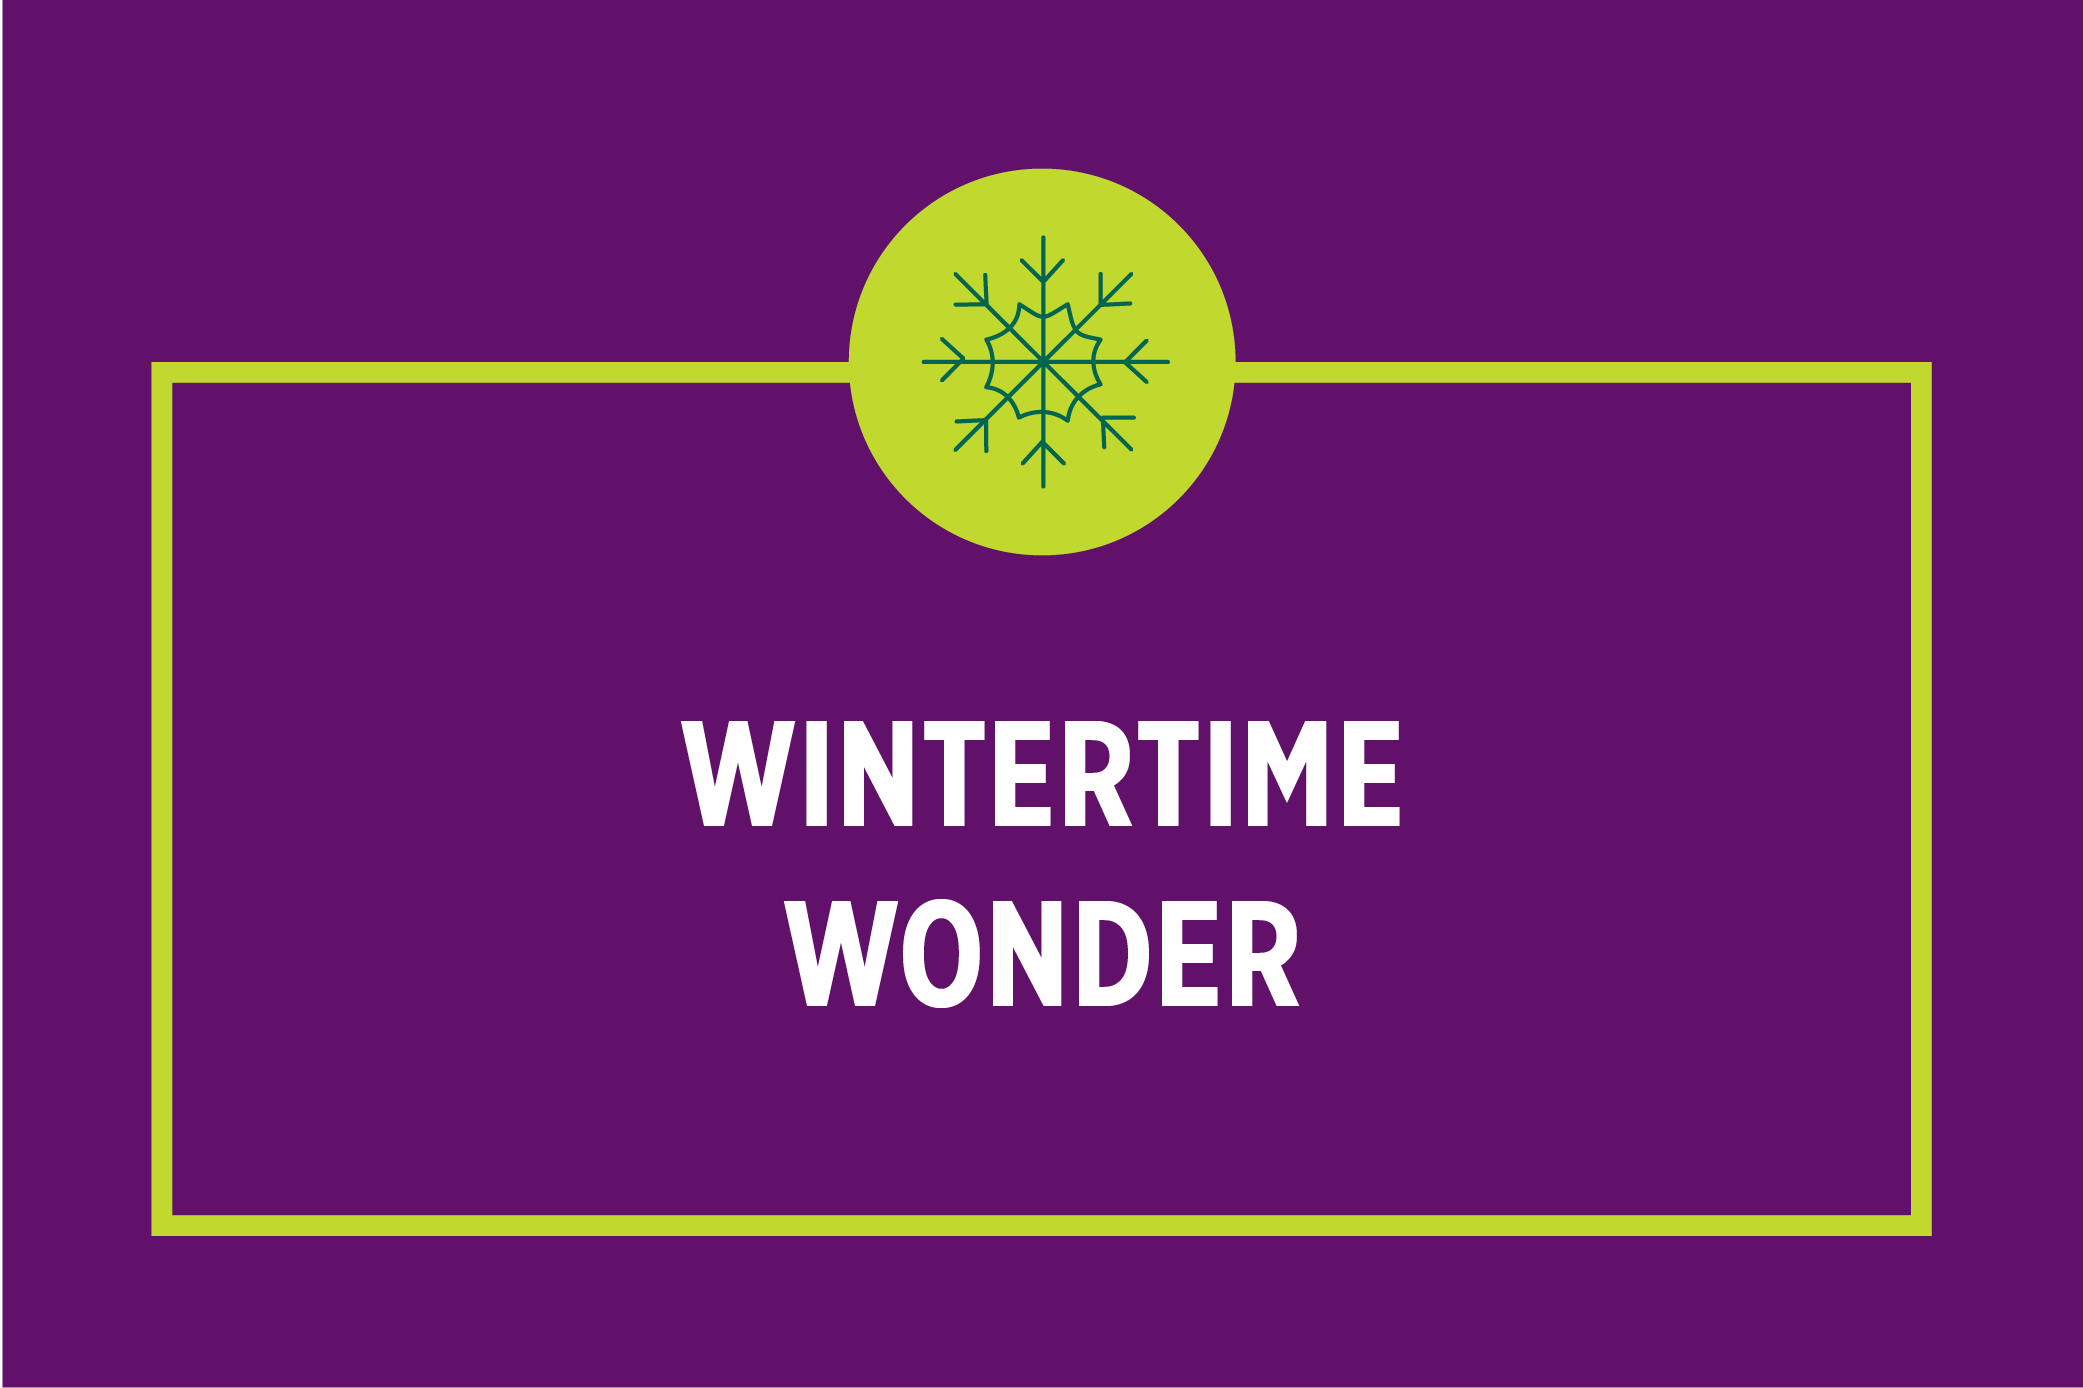 Wintertime Wonder: Finding Creativity and Joy in the Everyday